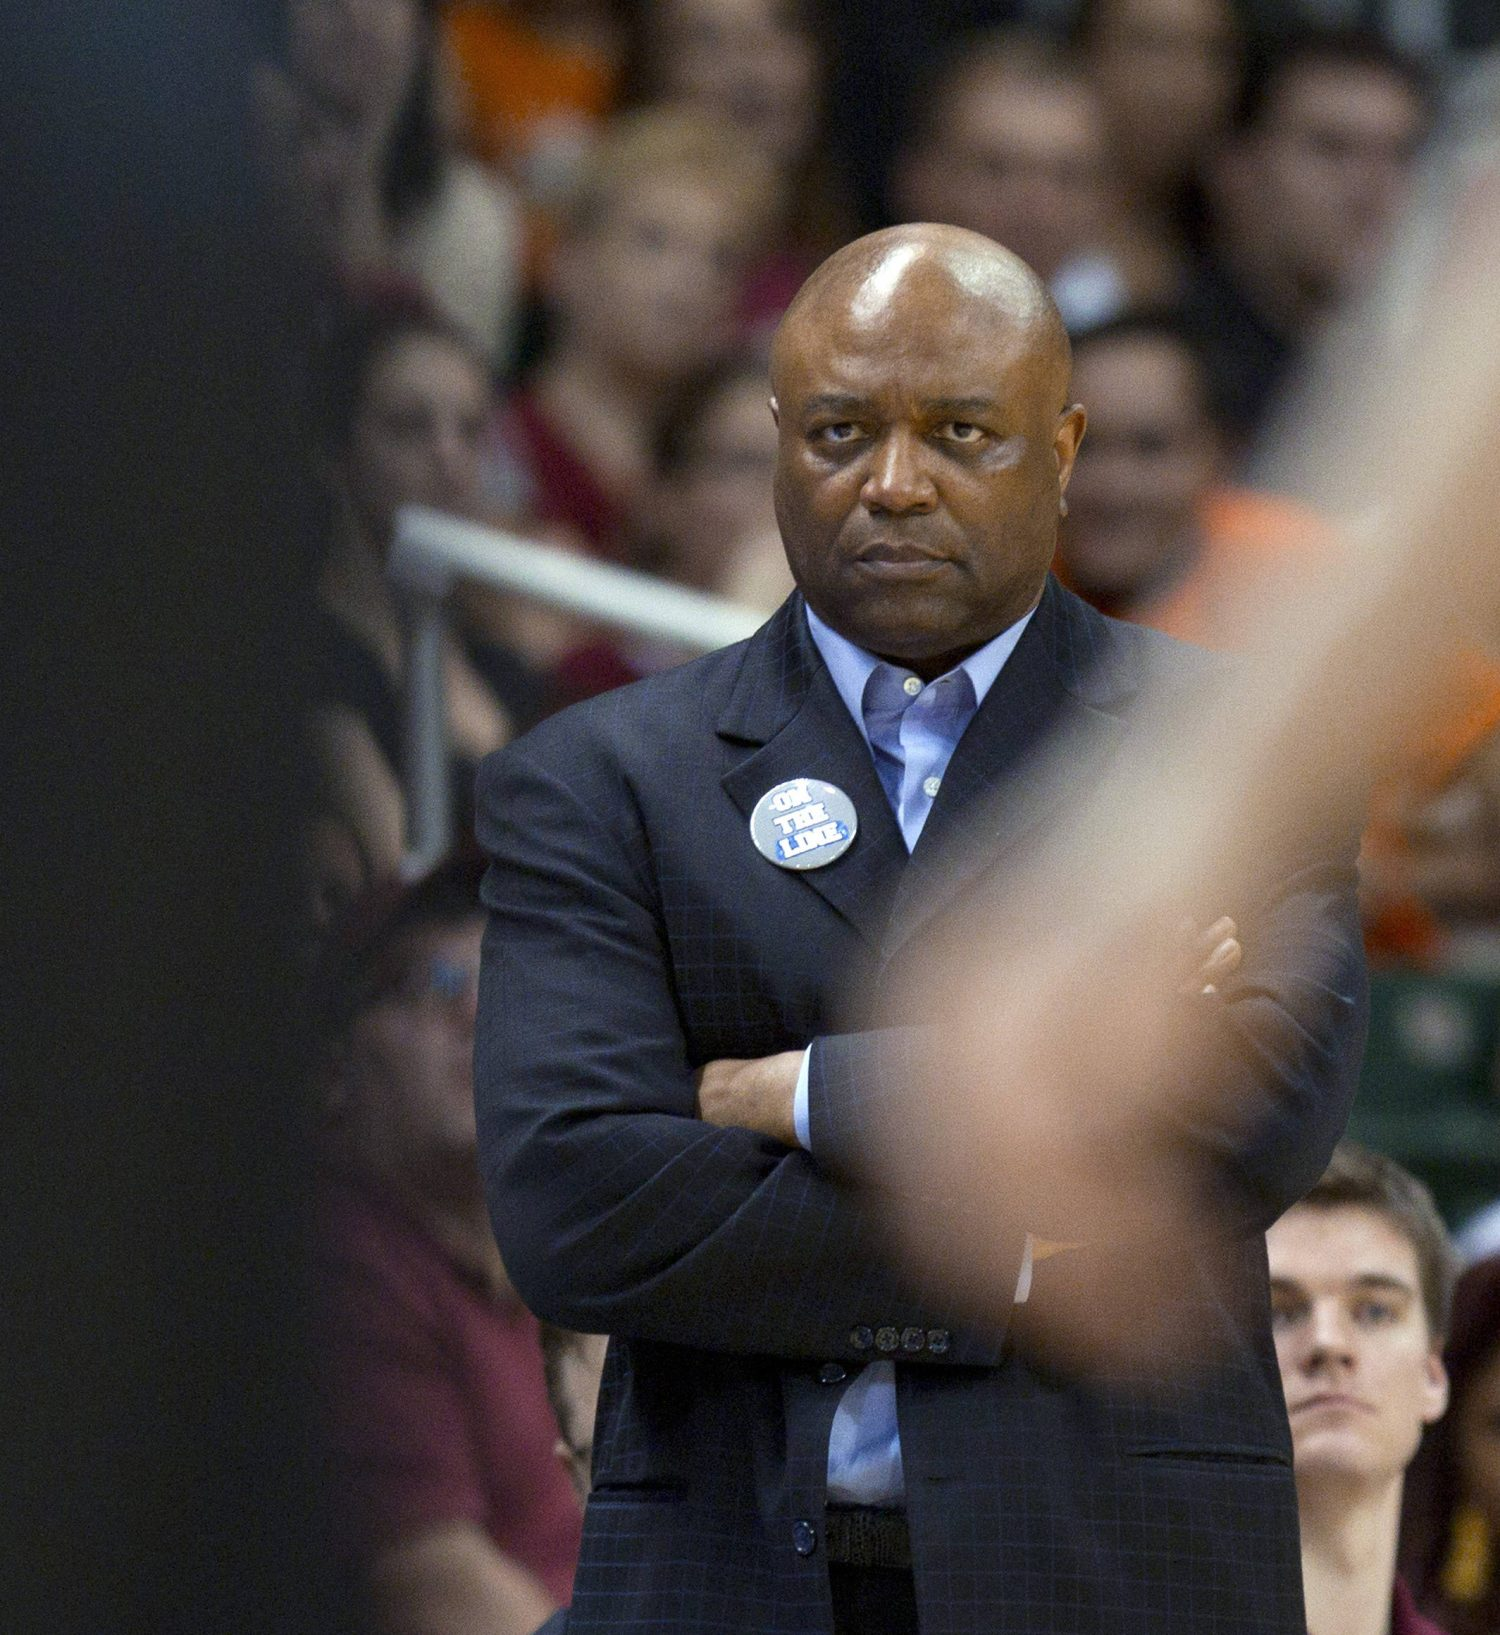 Florida State coach Leonard Hamilton watches Miami score during the second half of an NCAA college basketball game in Coral Gables, Fla., Sunday, Feb. 26, 2012, against Miami. Miami defeated Florida State 78-62. (AP Photo/J Pat Carter)